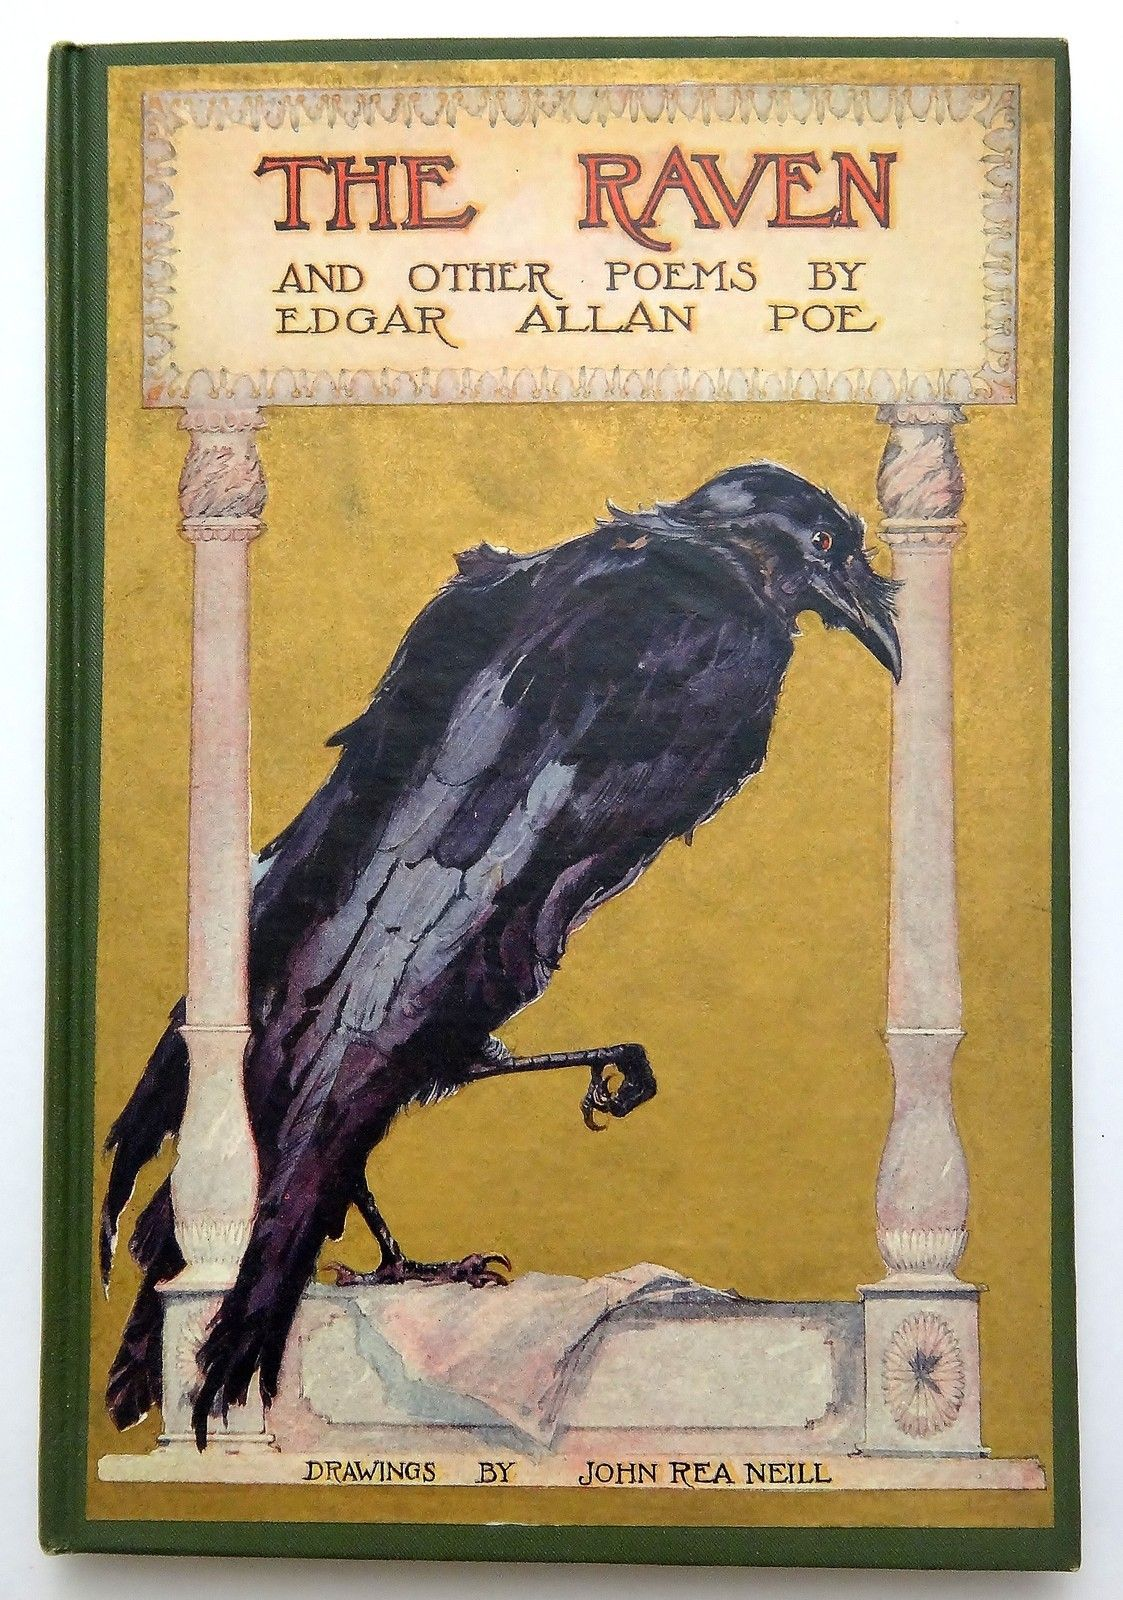 1910 Edgar Allan Poe The Raven Other Poem Book Cover Poetry By